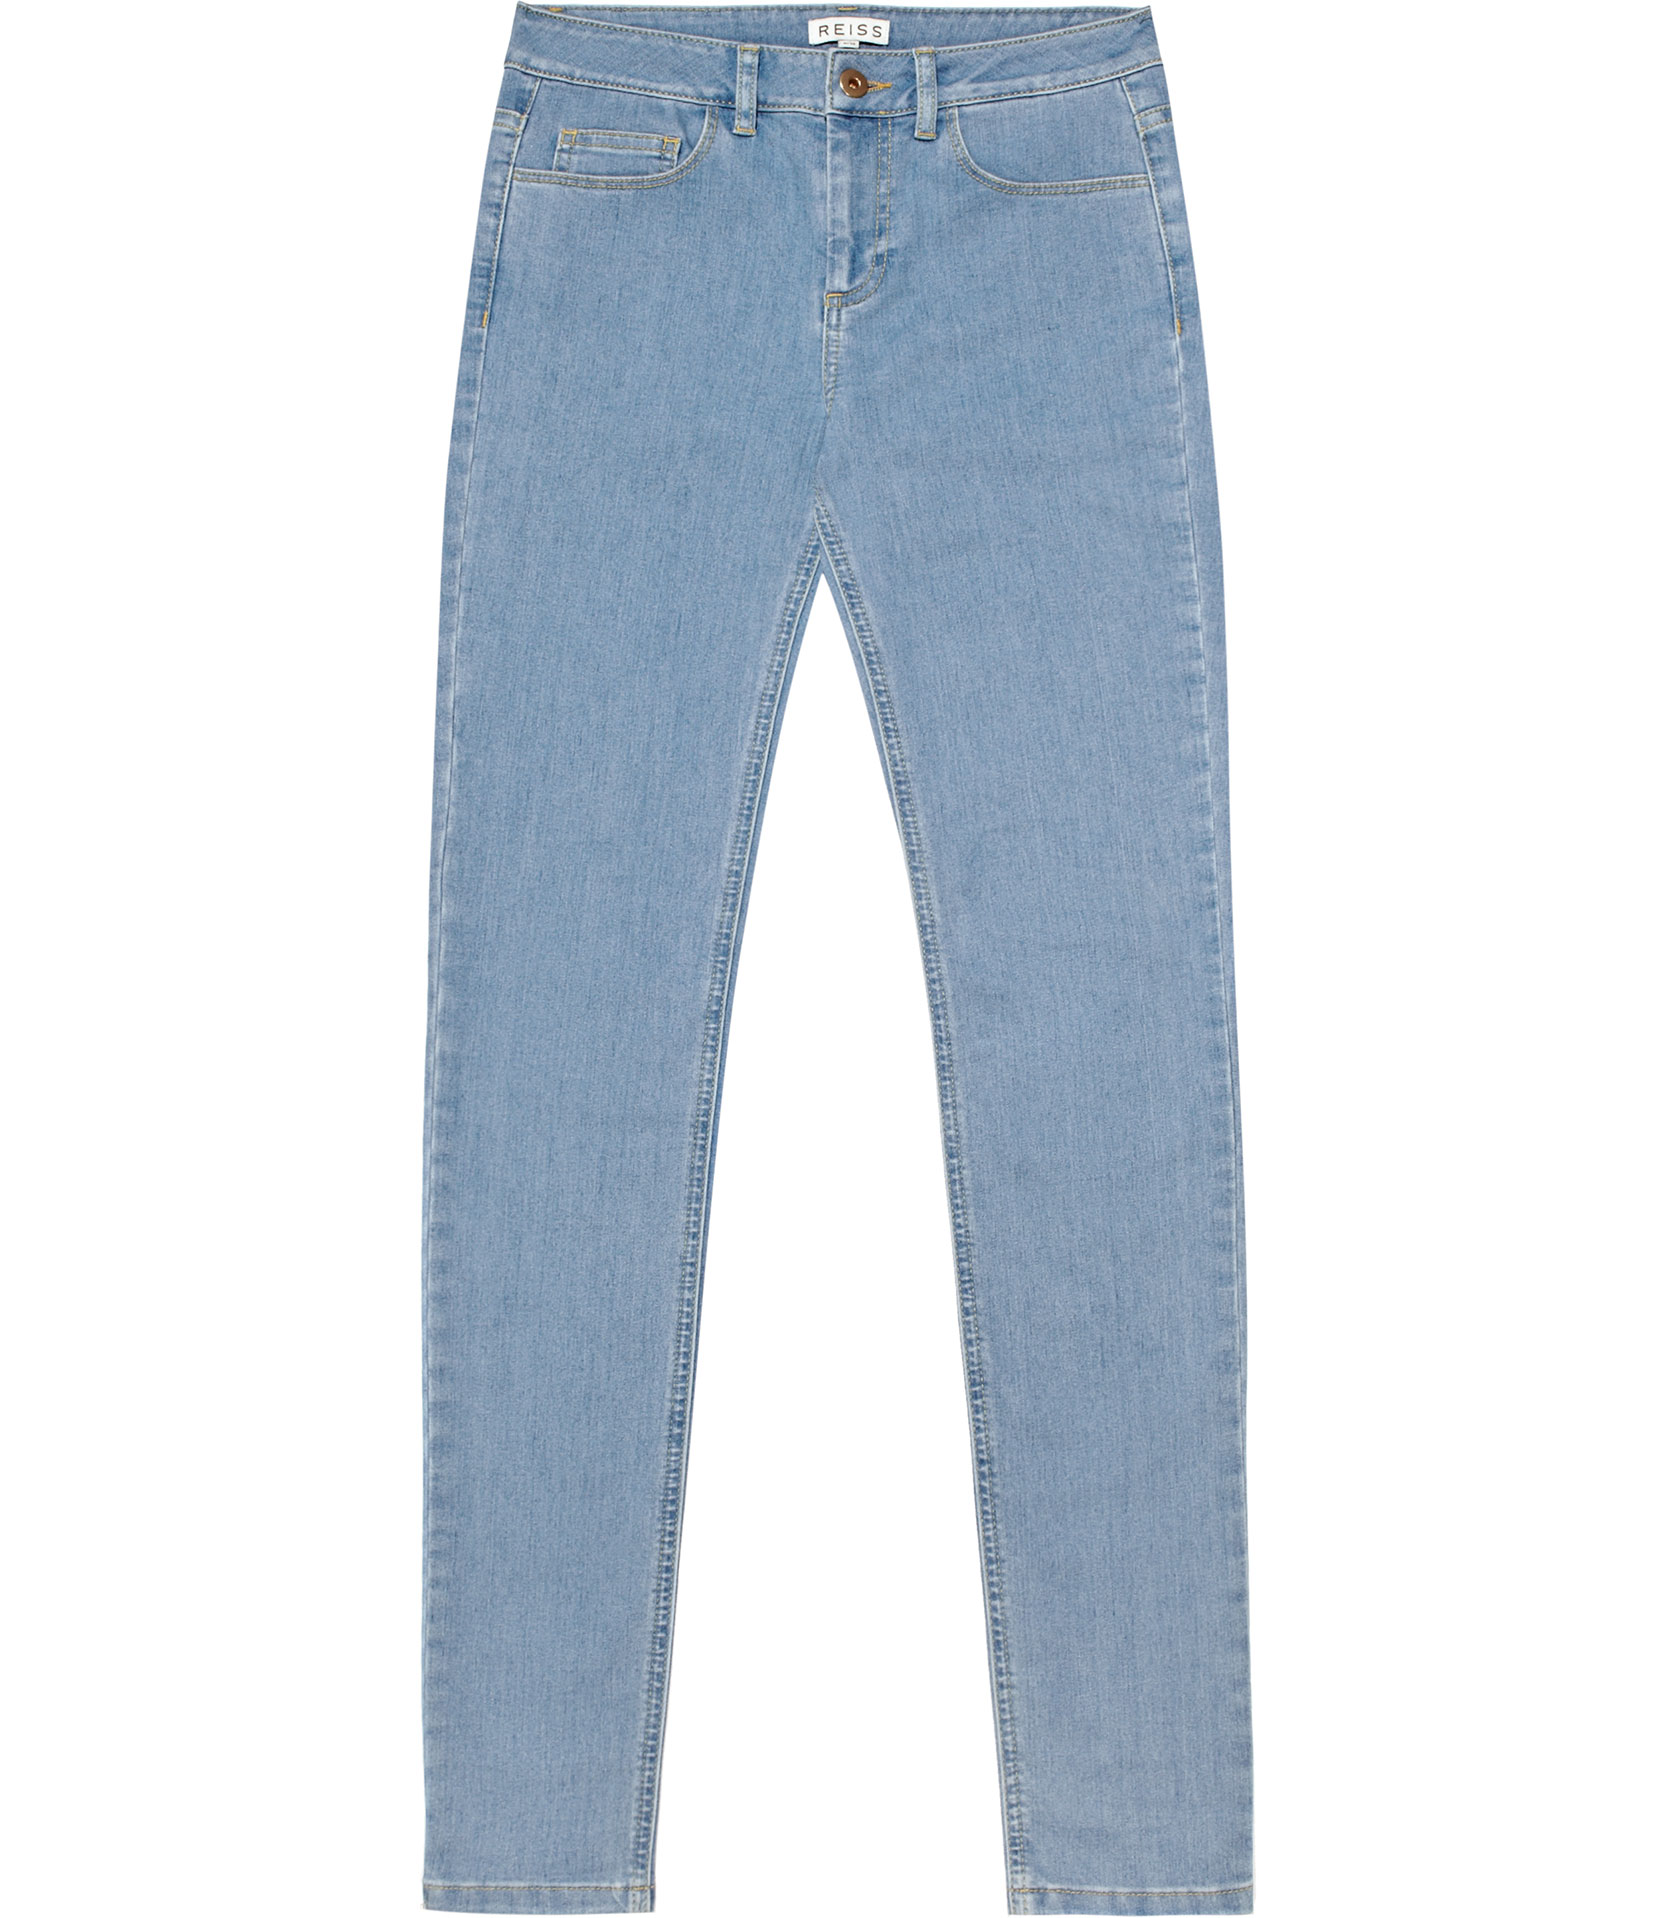 Reiss Smith Denim Skinny Jeans in Blue | Lyst